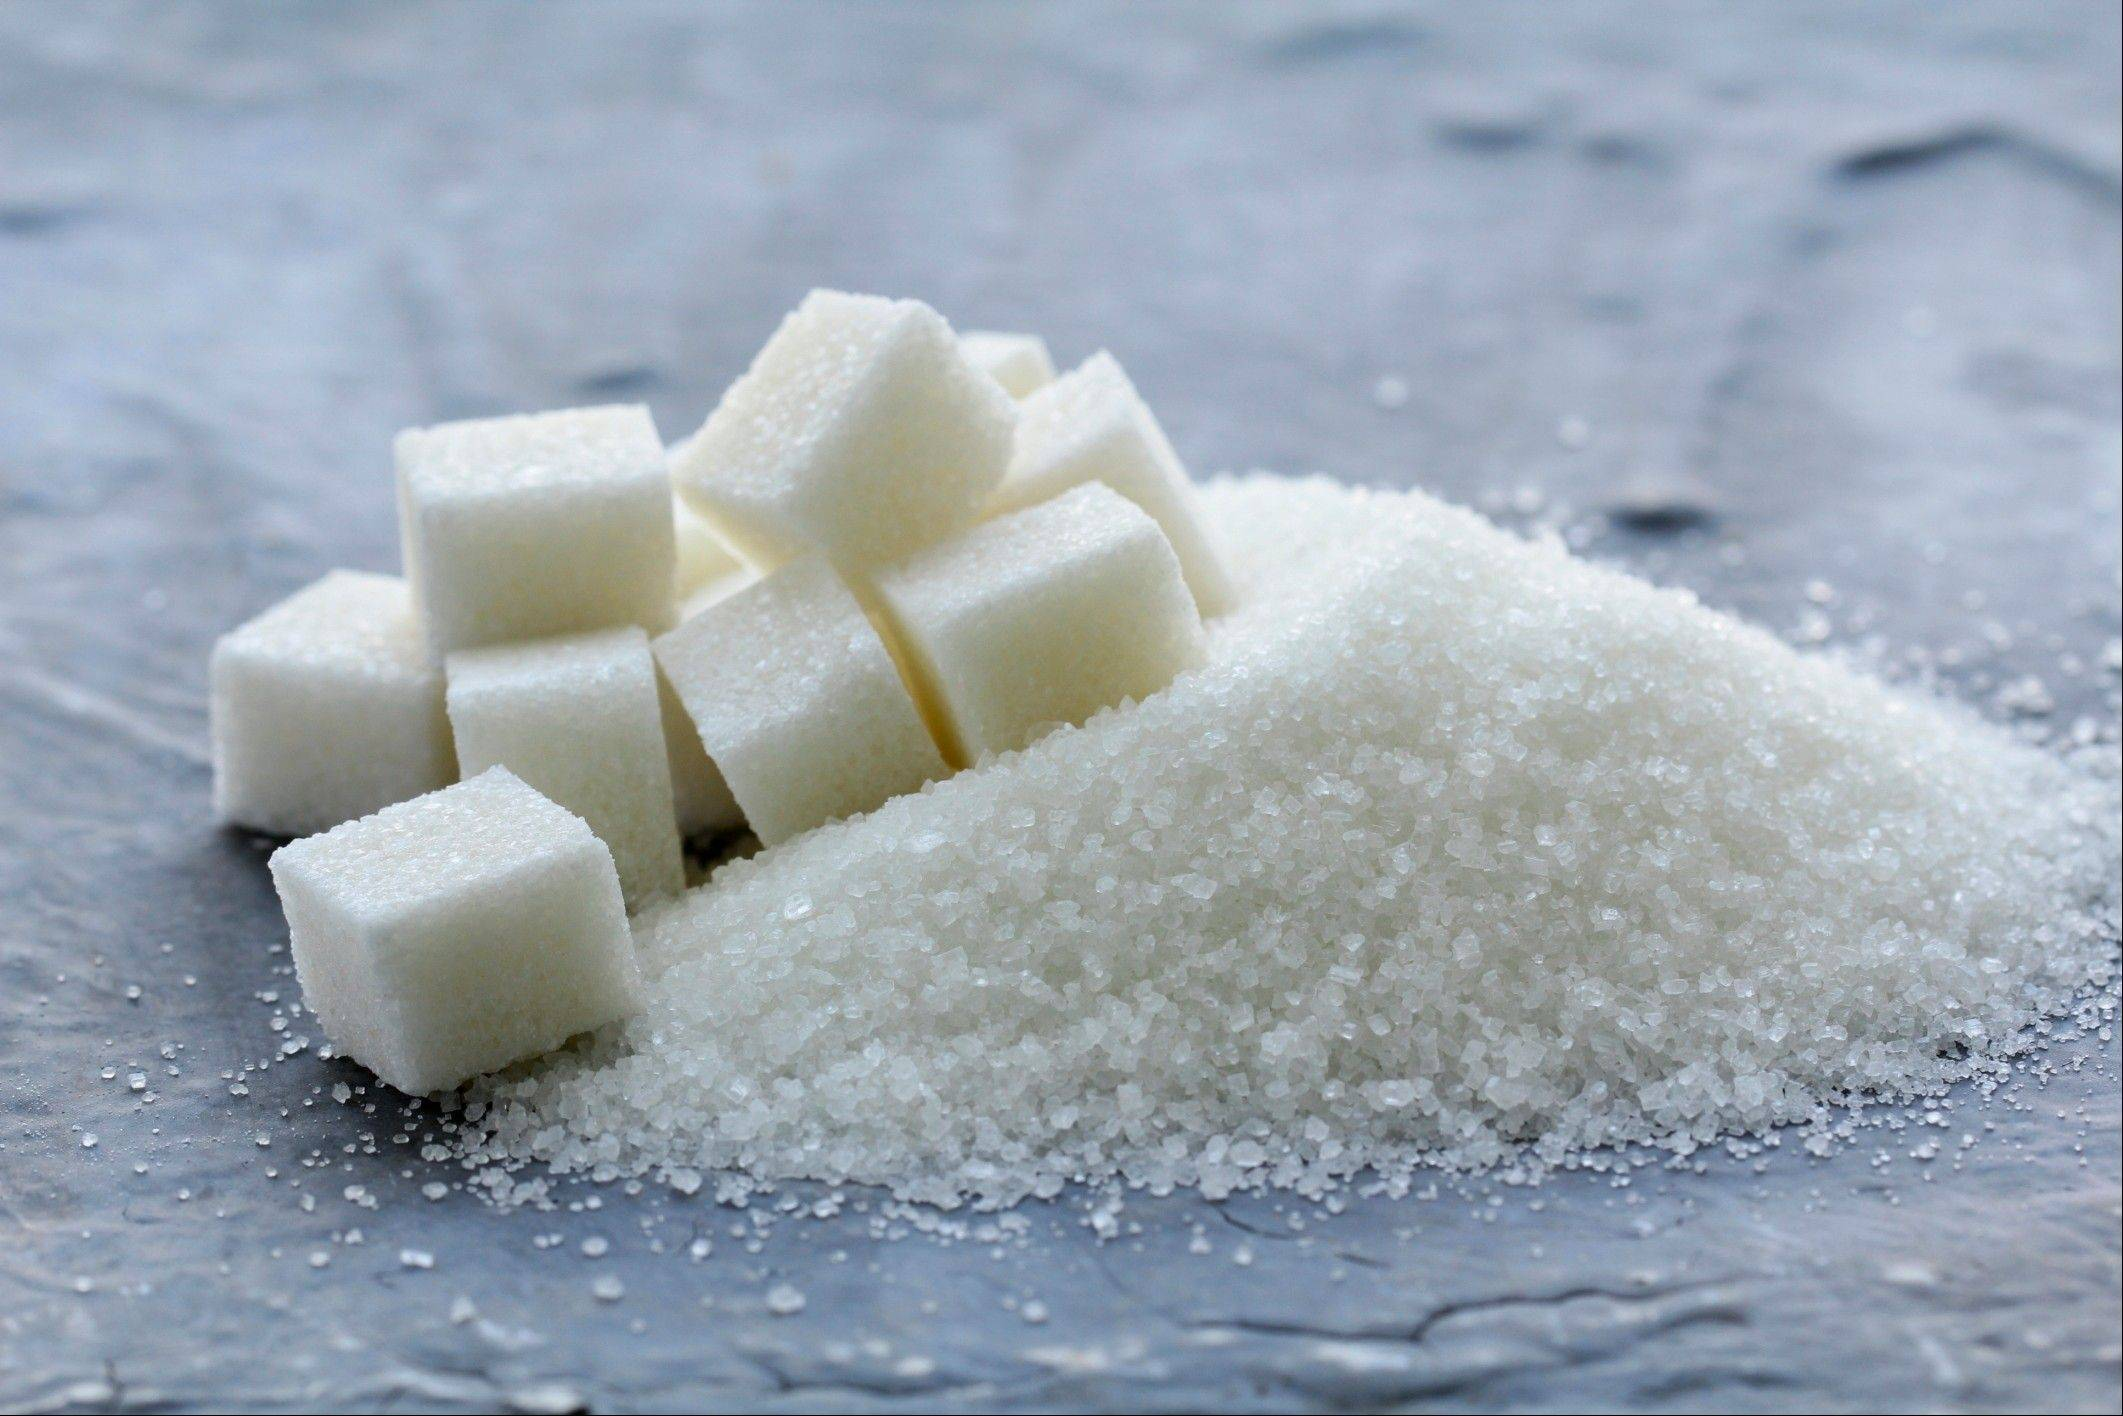 Watch out for too much sugar in your diet — even a very small amount can have consequences.